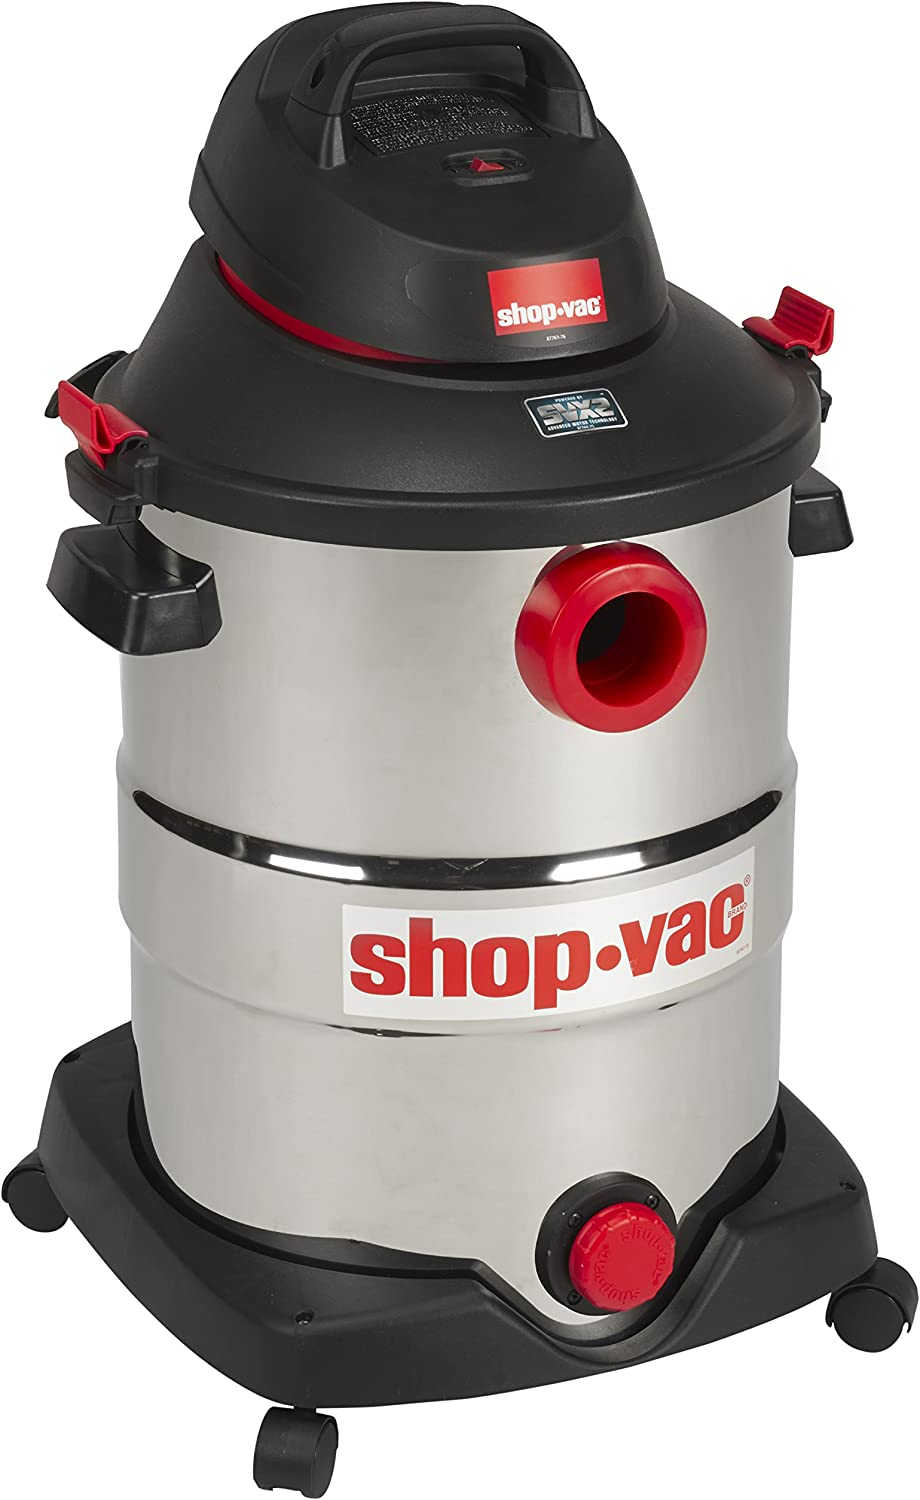 Shop-Vac 5989500 12 gallon 5.5 Peak HP Stainless Wet Dry Vacuum, Black